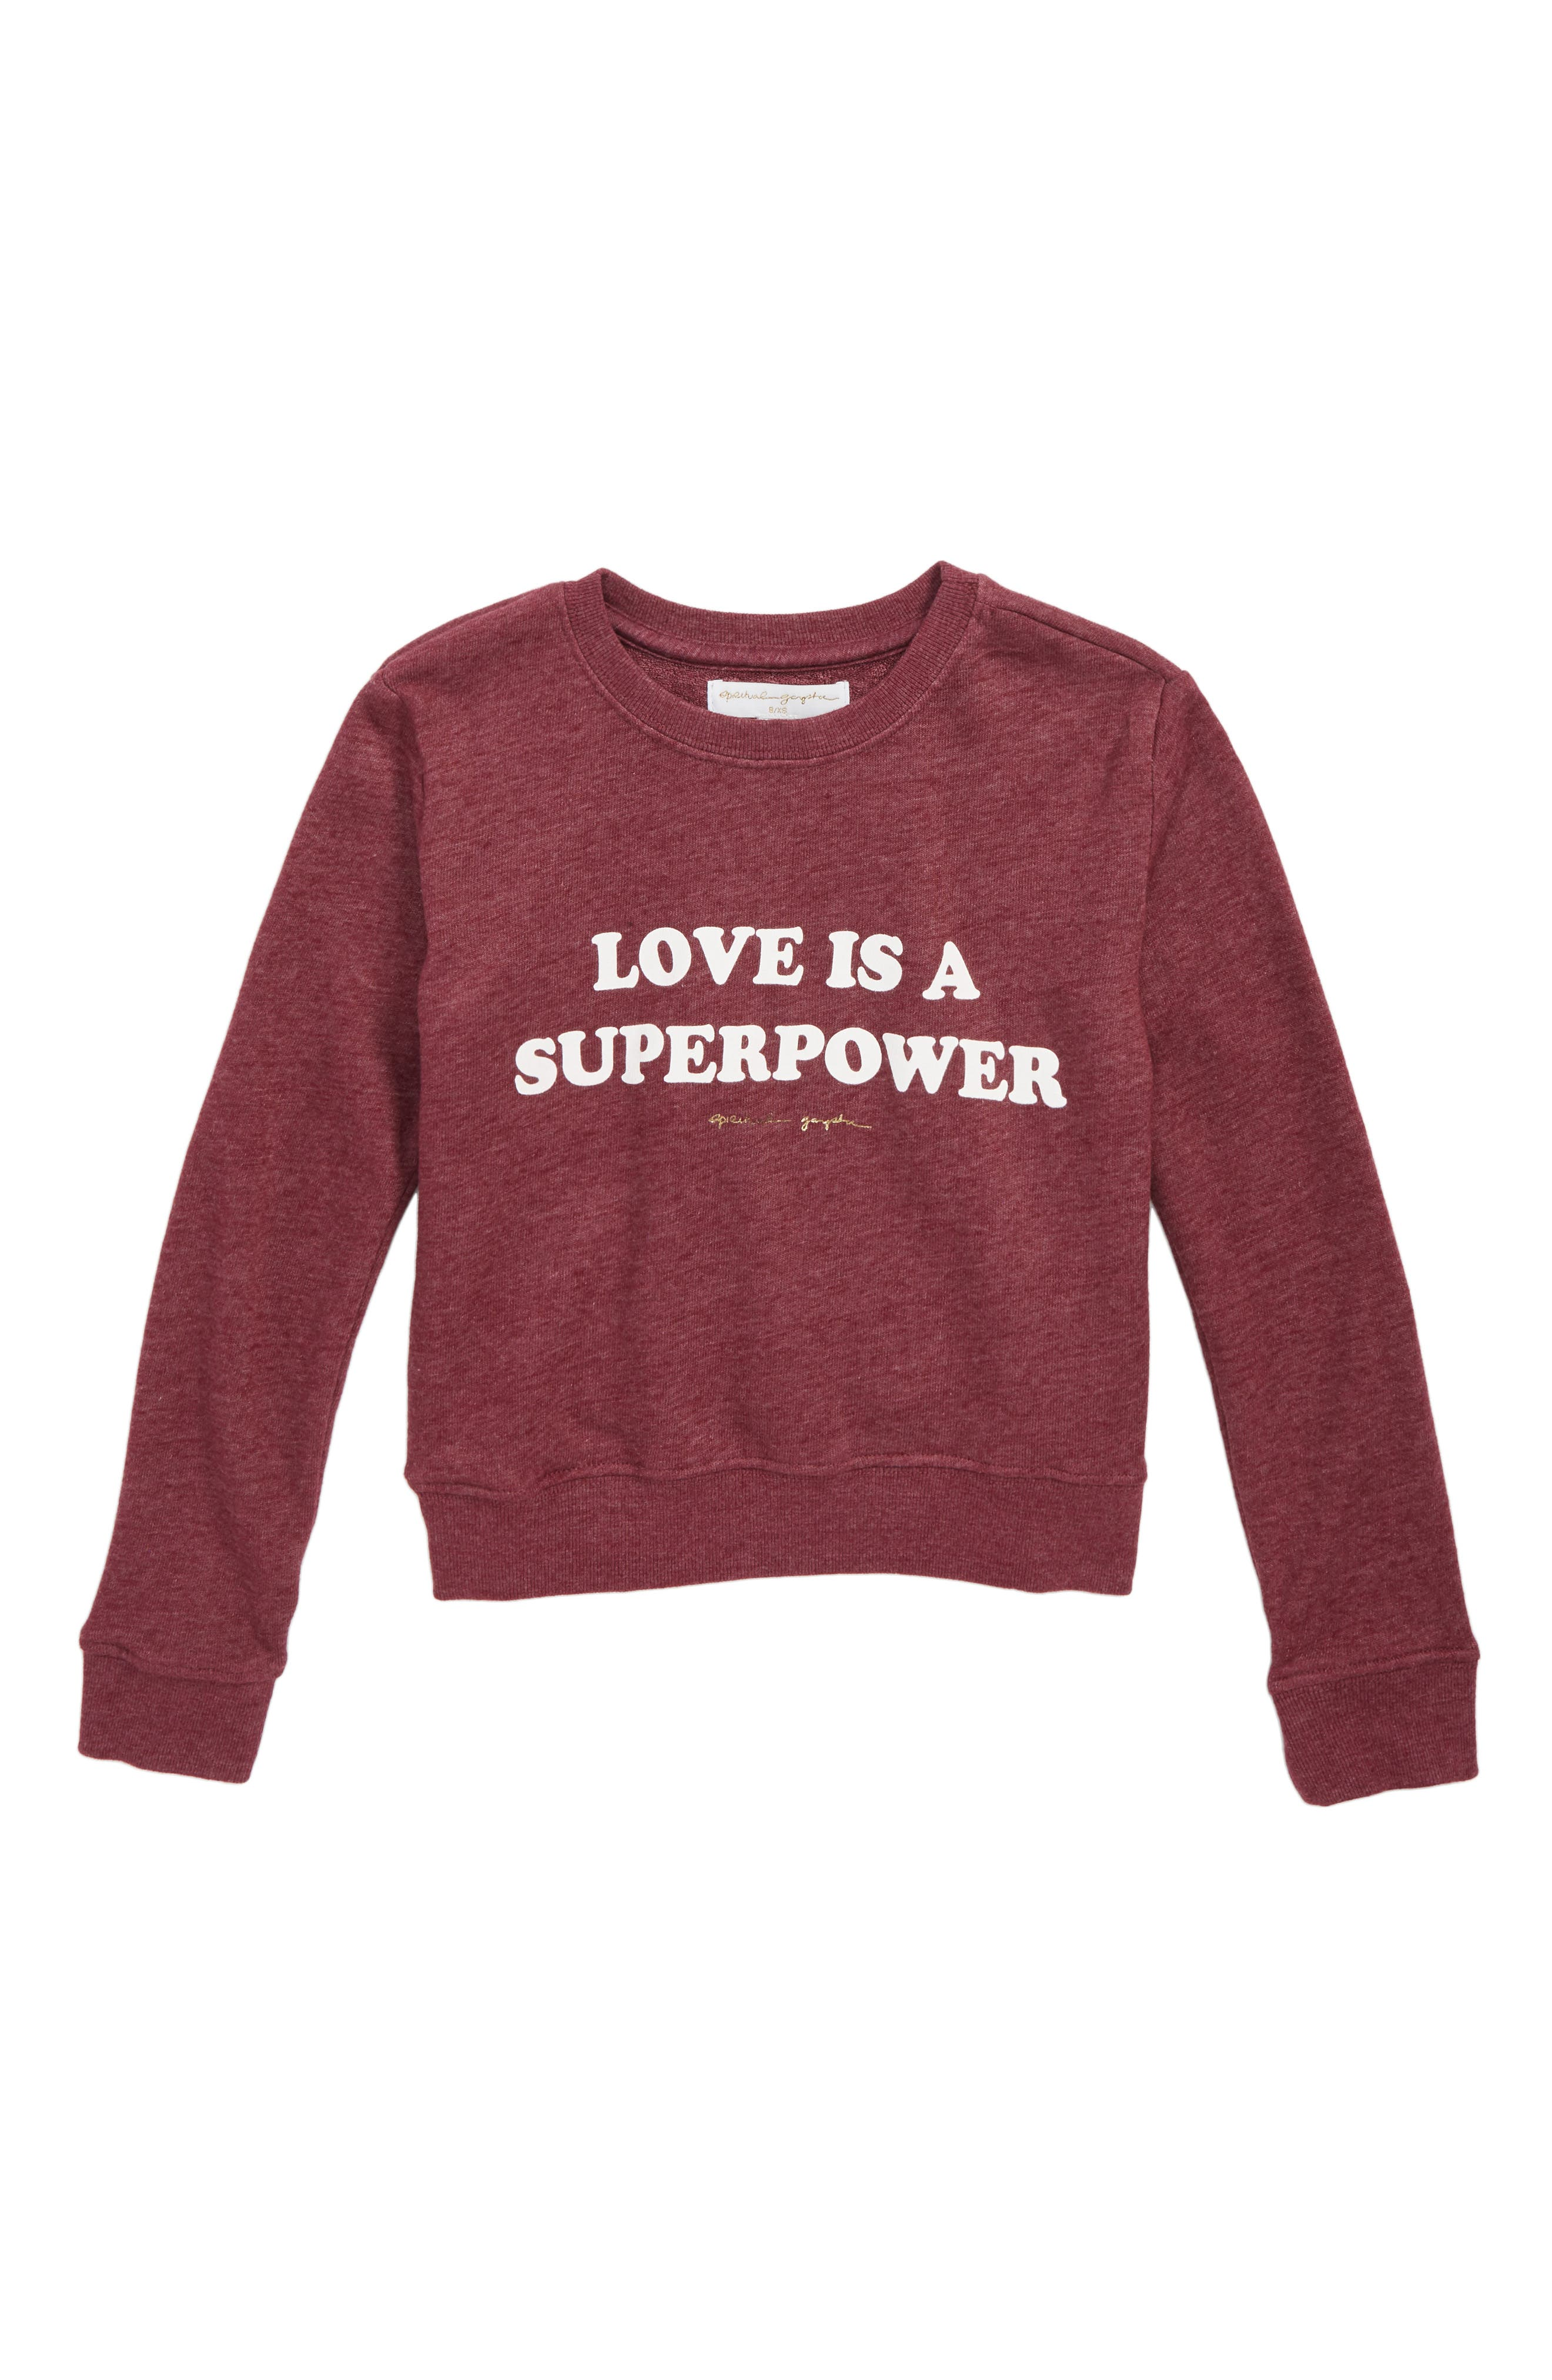 Superpower Crewneck Sweater,                         Main,                         color, AMOR